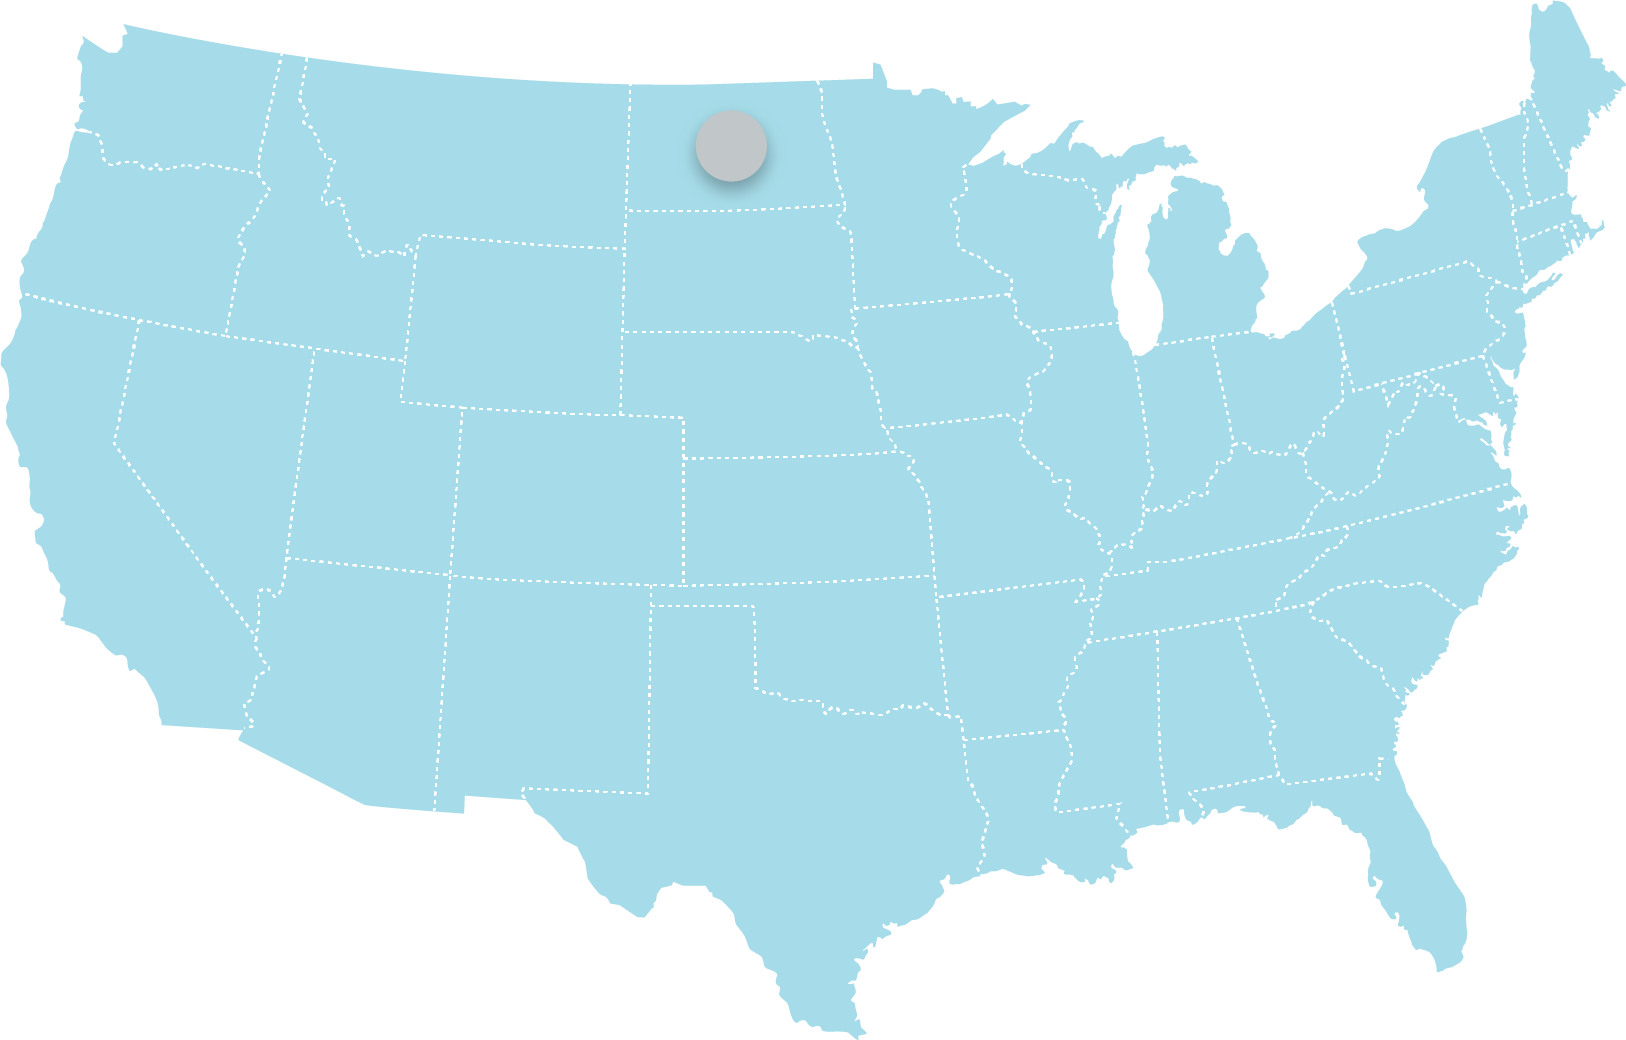 policy_m_state_path_partner_map_genetic_osso